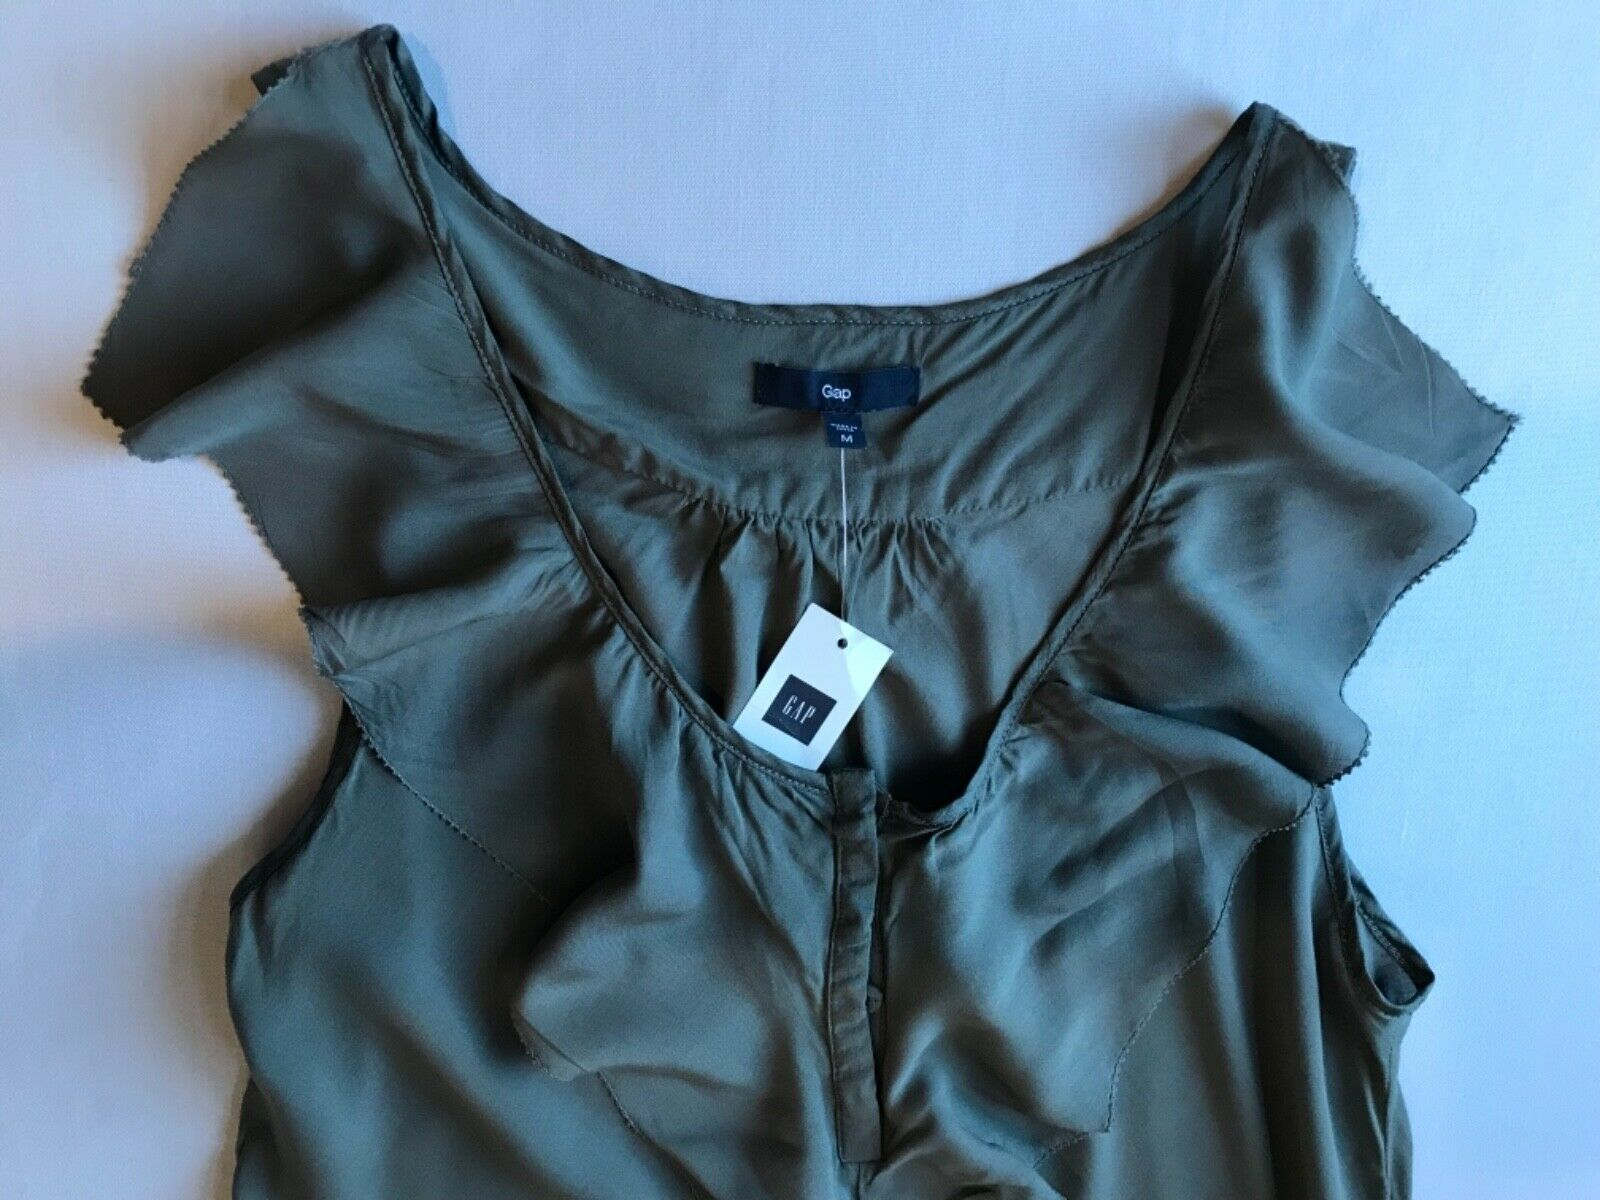 Primary image for Tank Top Blouse in Gray w/ Flutter trim along Neckline in size M by the Gap